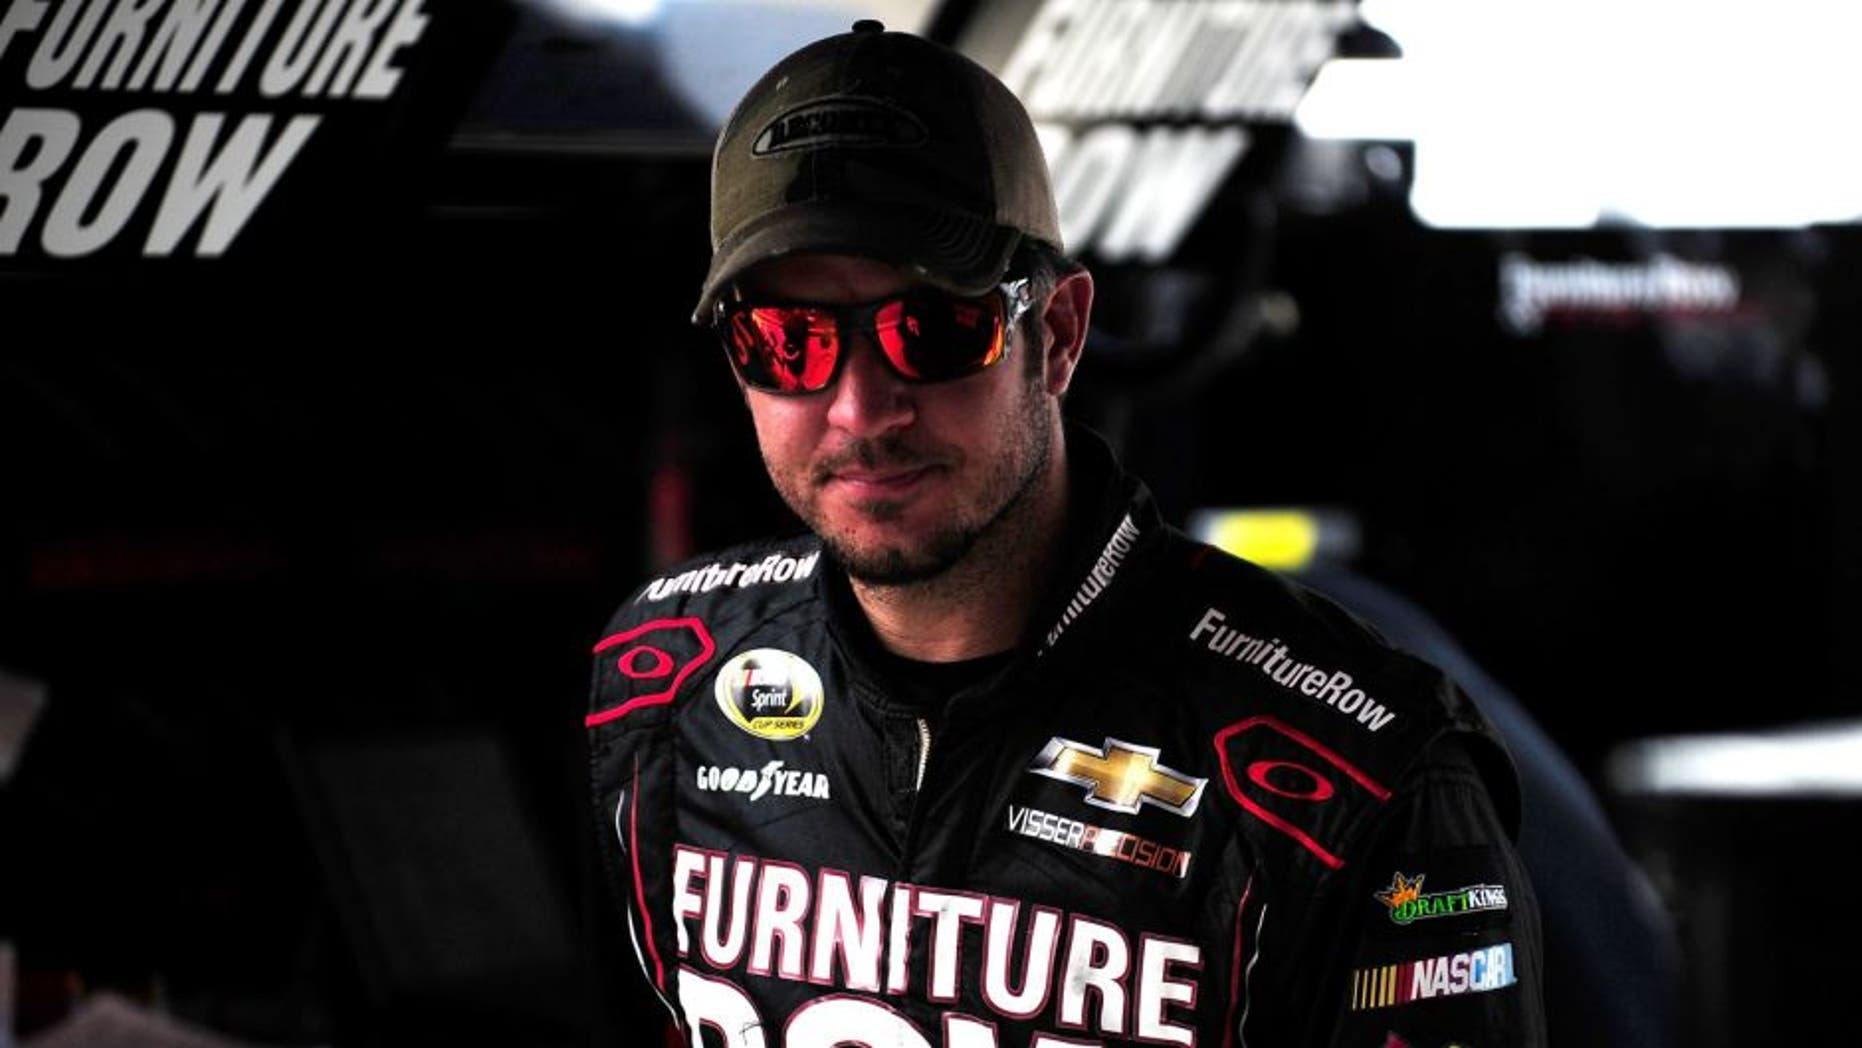 BRISTOL, TN - AUGUST 21: Martin Truex Jr., driver of the #78 Furniture Row/Visser Precision Chevrolet, stands in the garage area during practice for the NASCAR Sprint Cup Series Irwin Tools Night Race at Bristol Motor Speedway on August 21, 2015 in Bristol, Tennessee. (Photo by Jeff Curry/NASCAR via Getty Images)